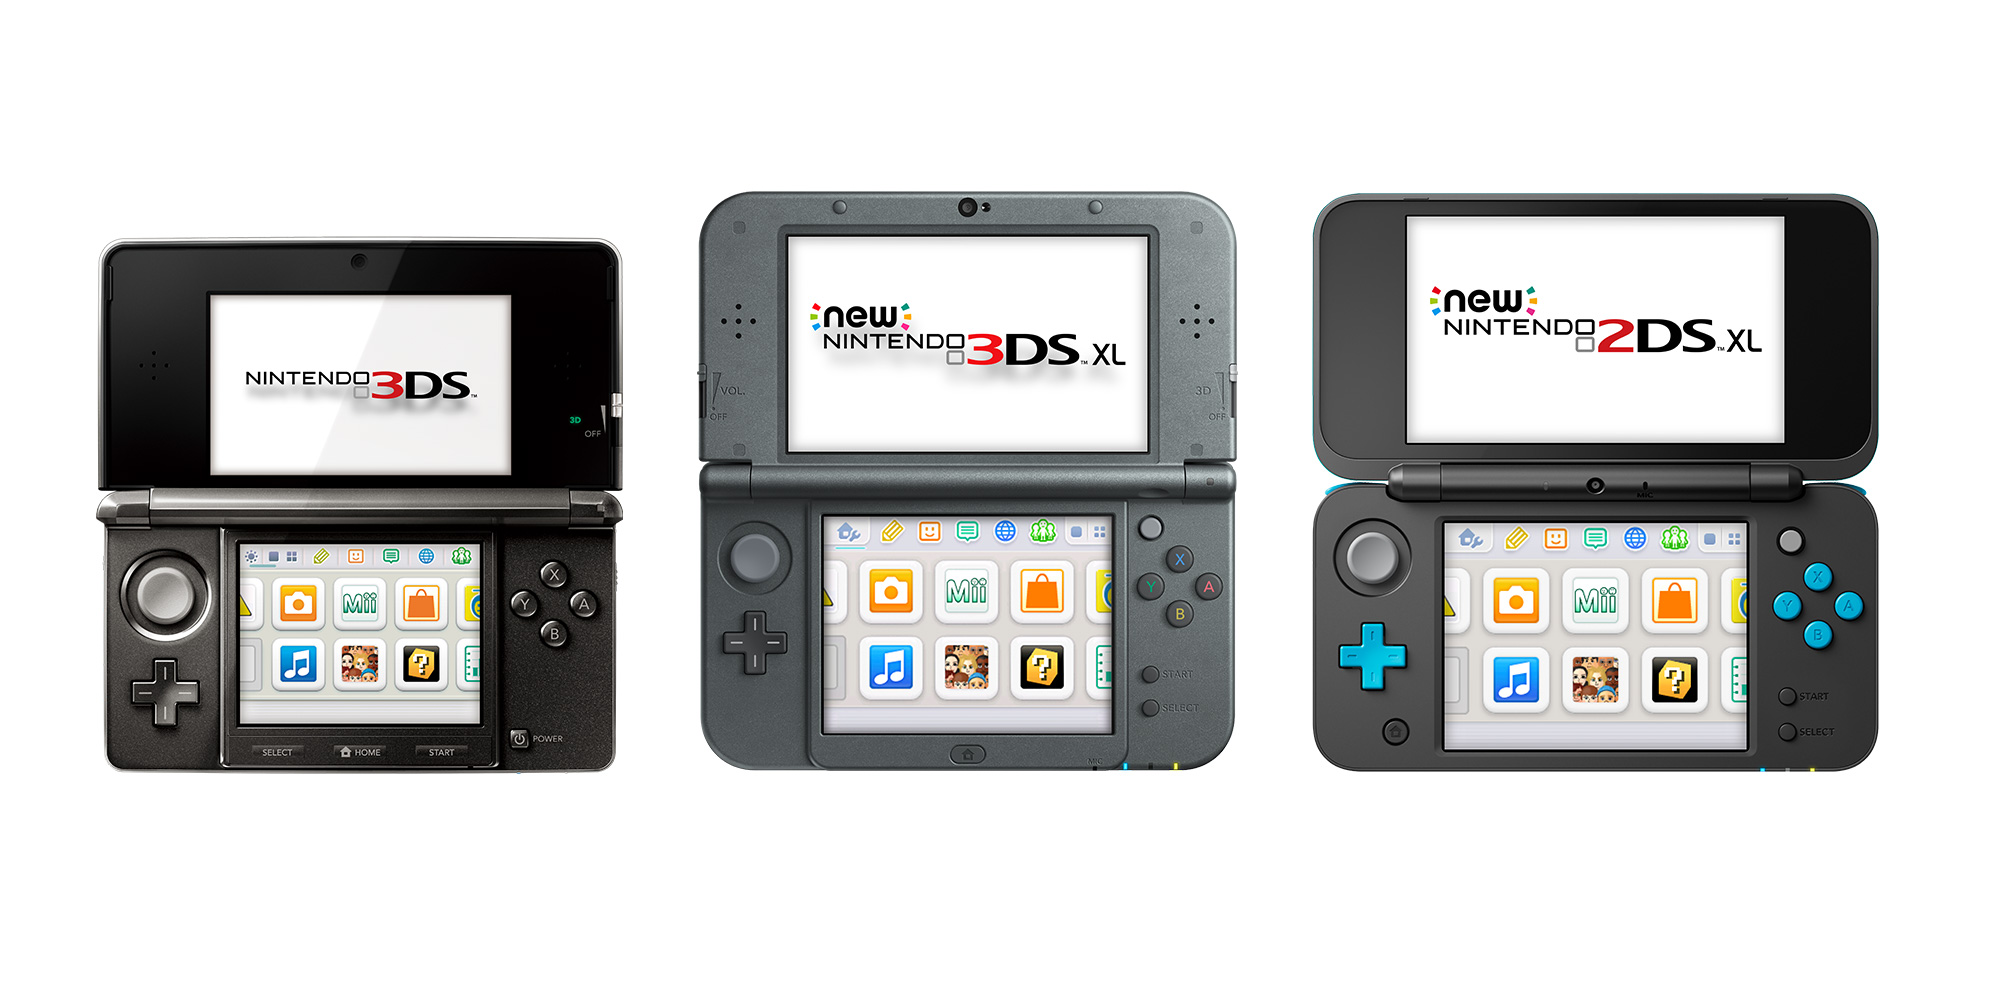 Can I play Nintendo DS games on my Nintendo 3DS? | Nintendo 3DS & 2DS |  Support | Nintendo